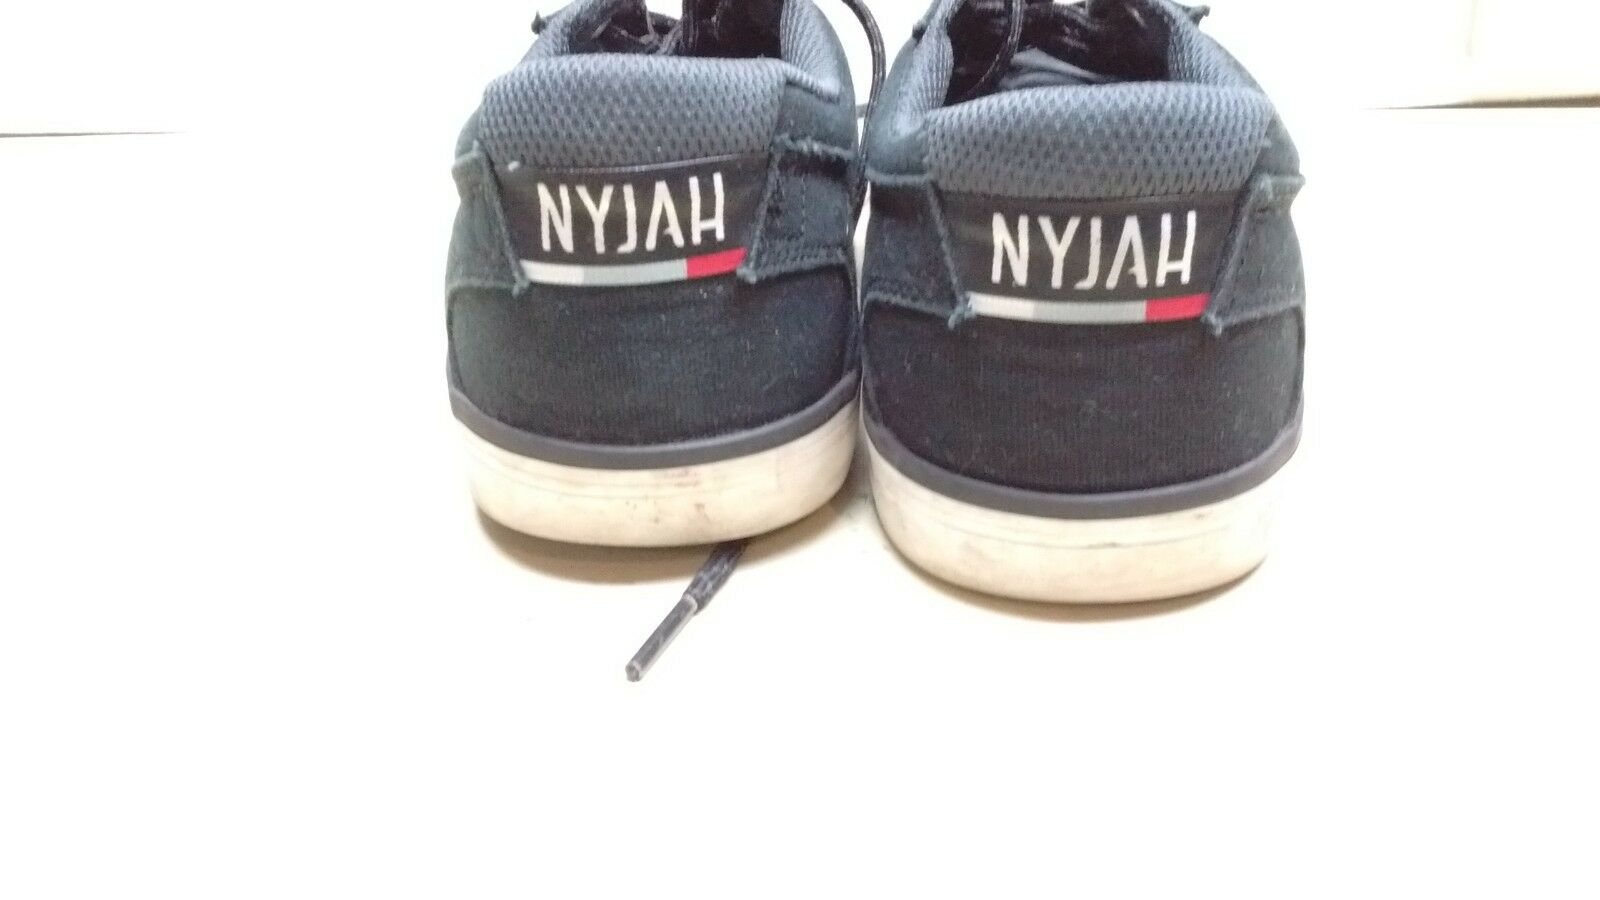 DC NYJAH hommes noir Suede Leather Lace Sneaker Casual Running Walking Running Casual Chaussures 9.5M bc034f